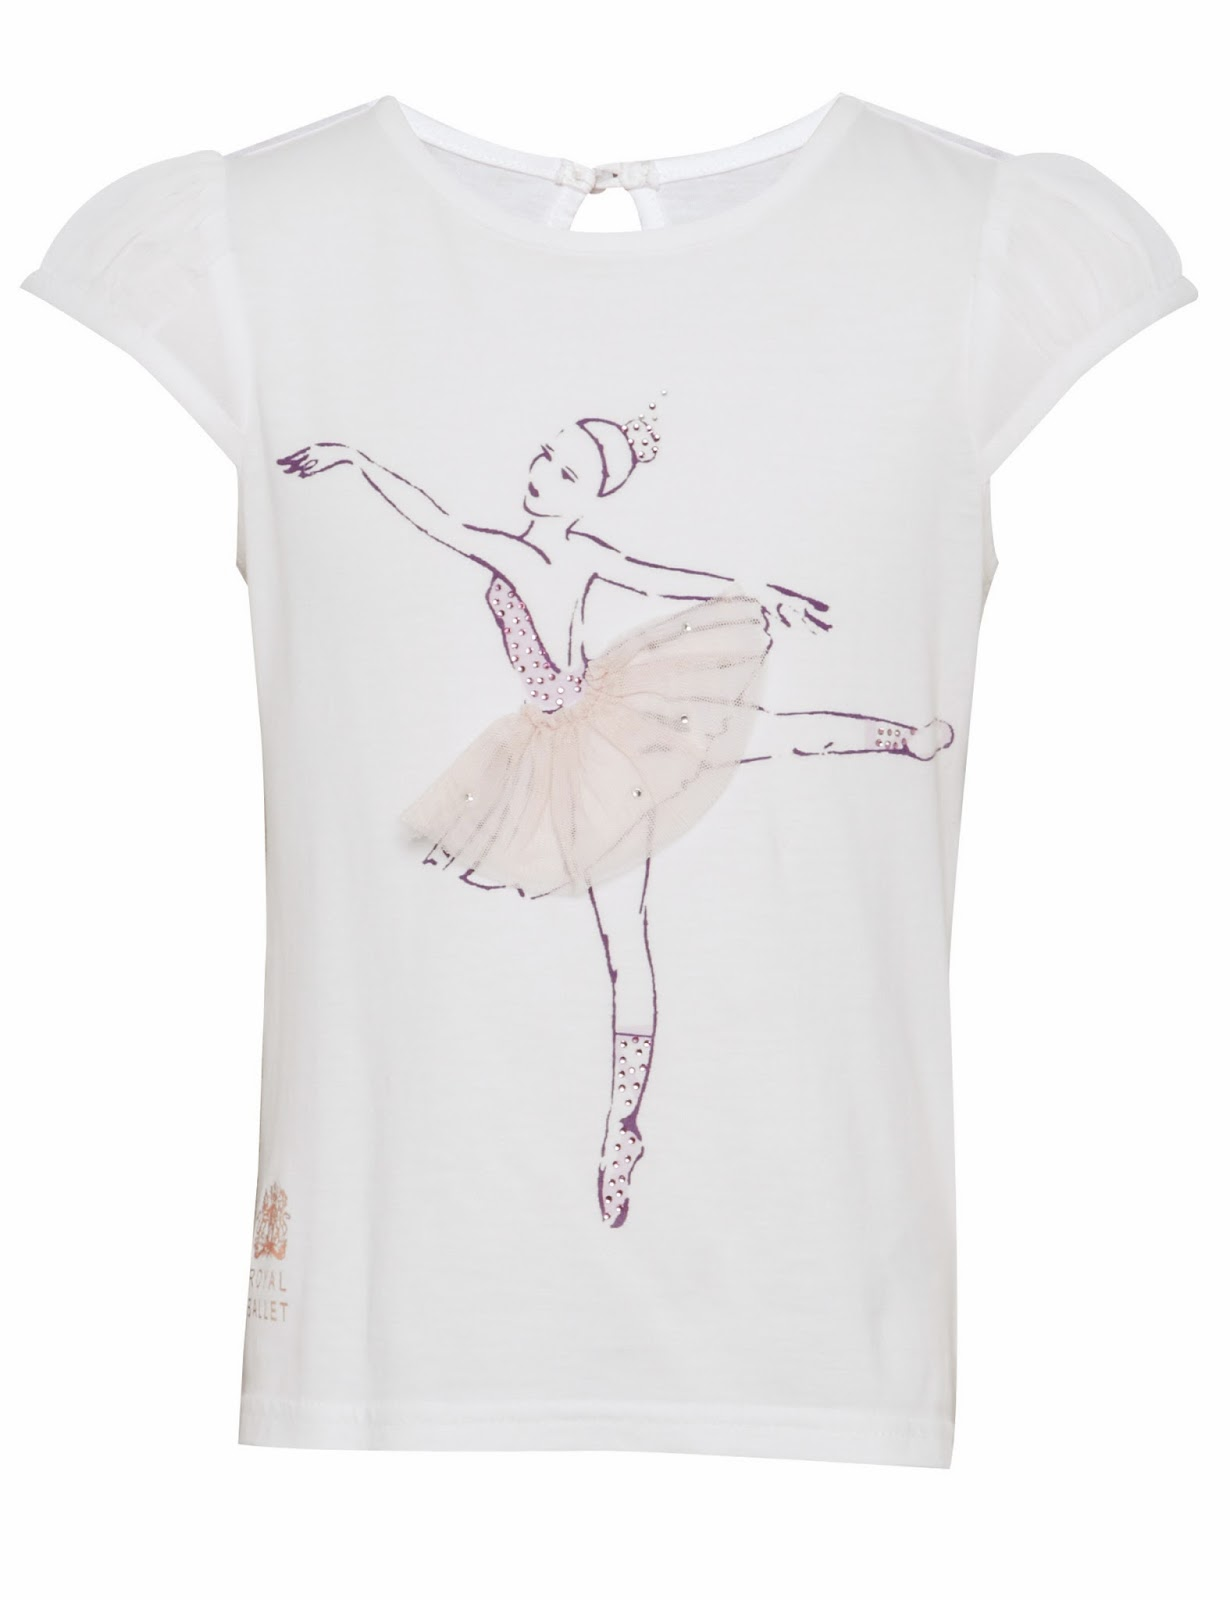 big ballet | baby ballet | ballerina | marks and spencer | royal ballet collection | girls fashion |kids clothes | dance lessons for kids | mamasVIb | channel 4 | ballet